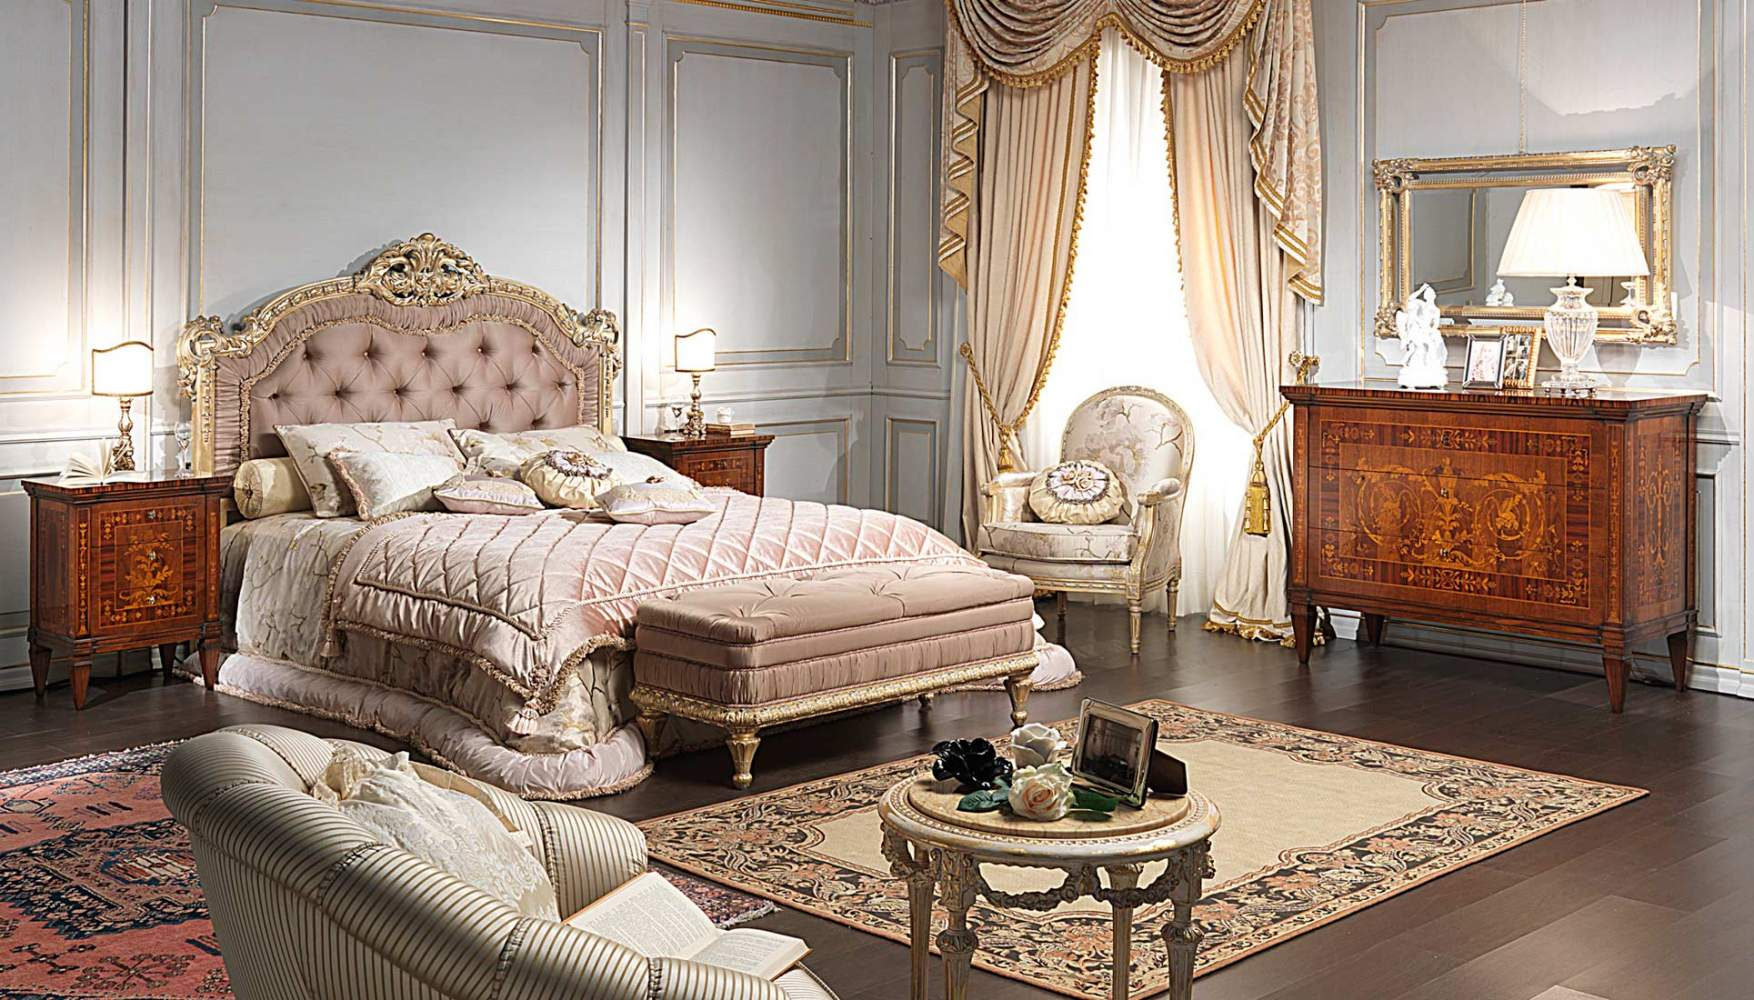 Classic bedroom Maggiolini, capitonnè bed, night tables, bench, chest of drawers, wall mirror